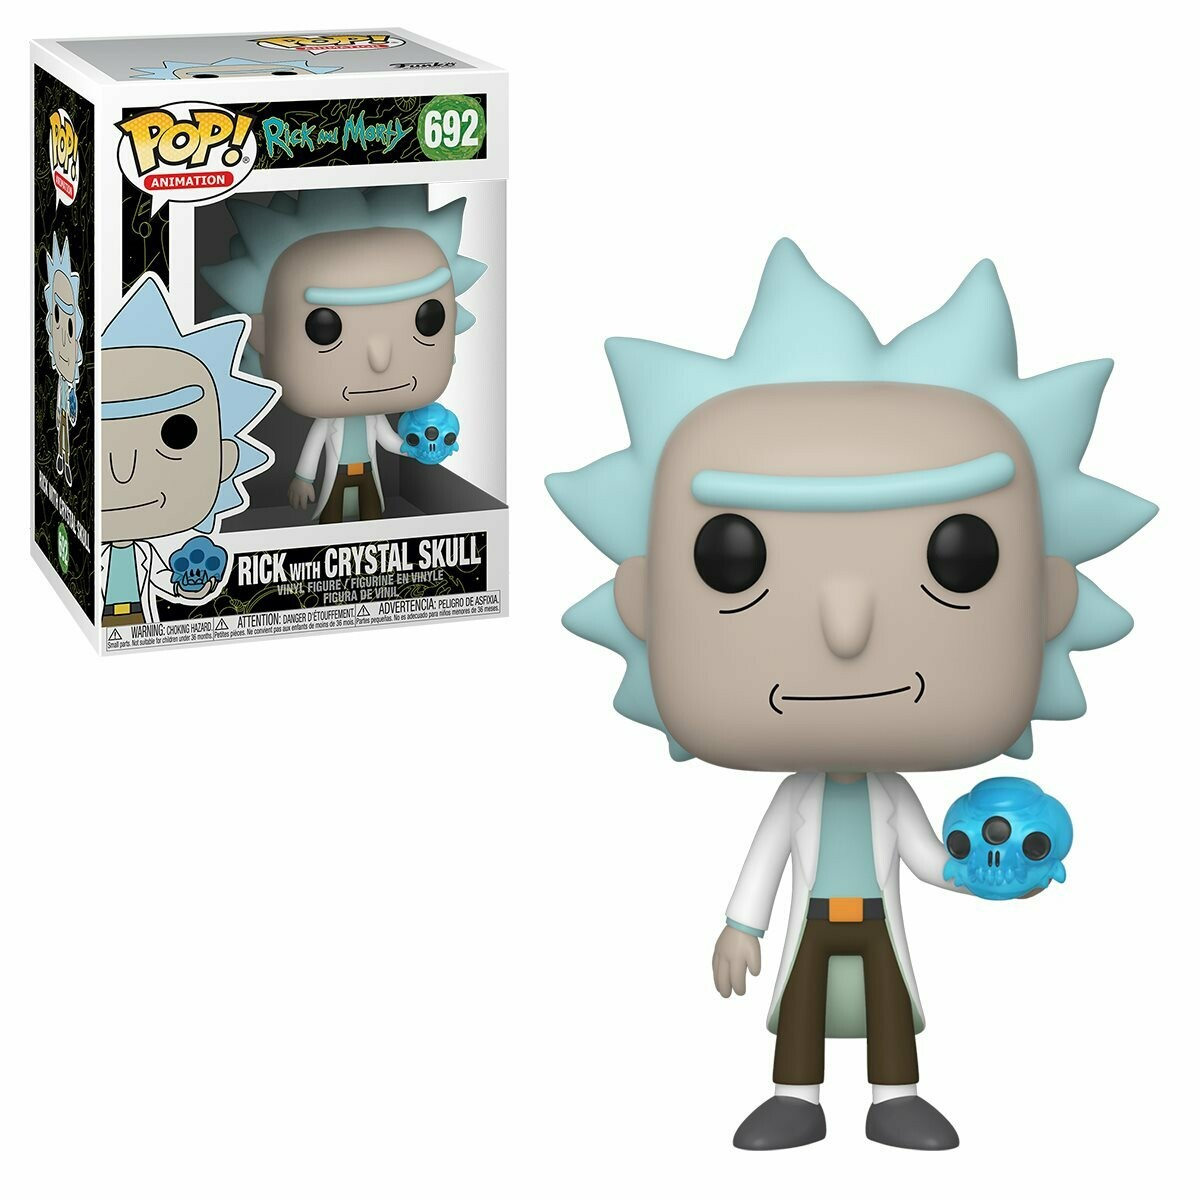 Funko Rick and Morty Rick With Crystal Skull Pop! Vinyl Figure